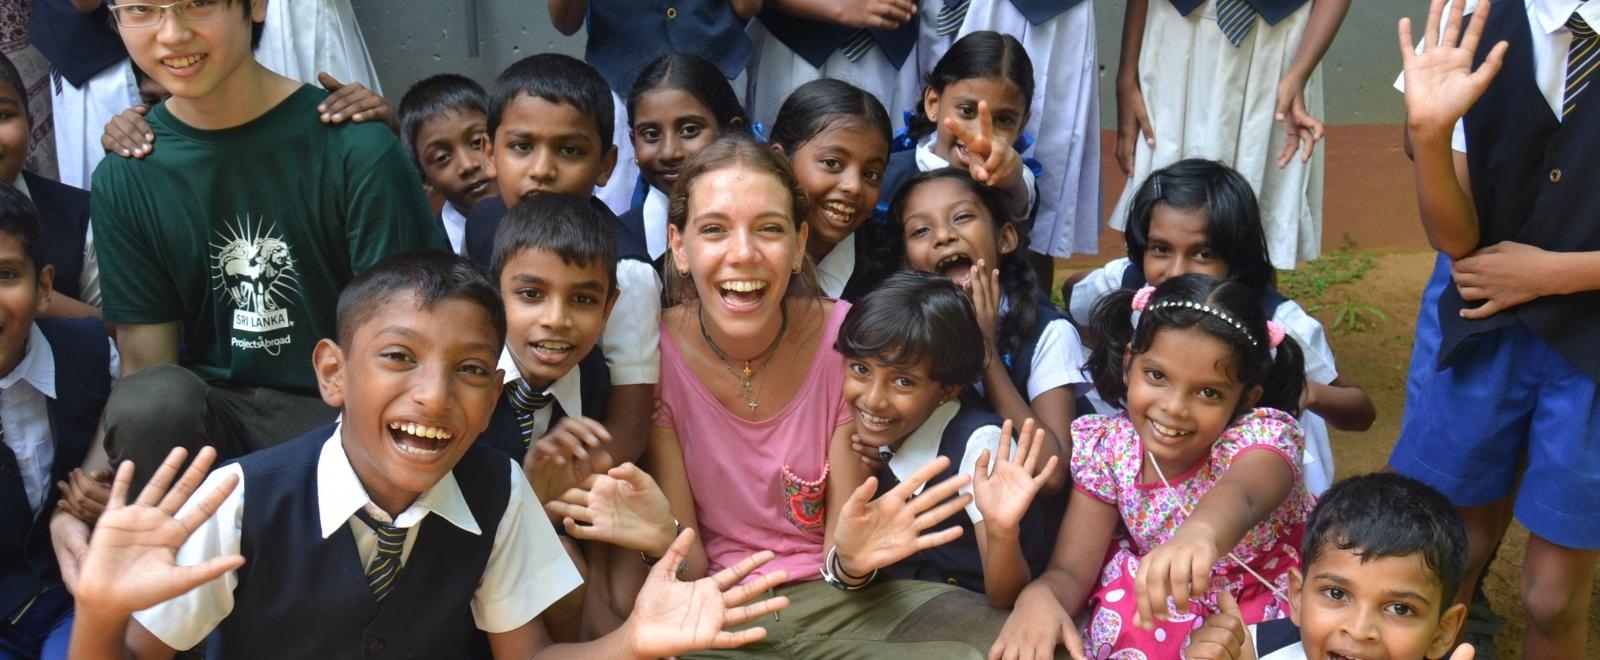 Two High School Special volunteers overseas for Christmas enjoy spending time teaching children in Sri Lanka.